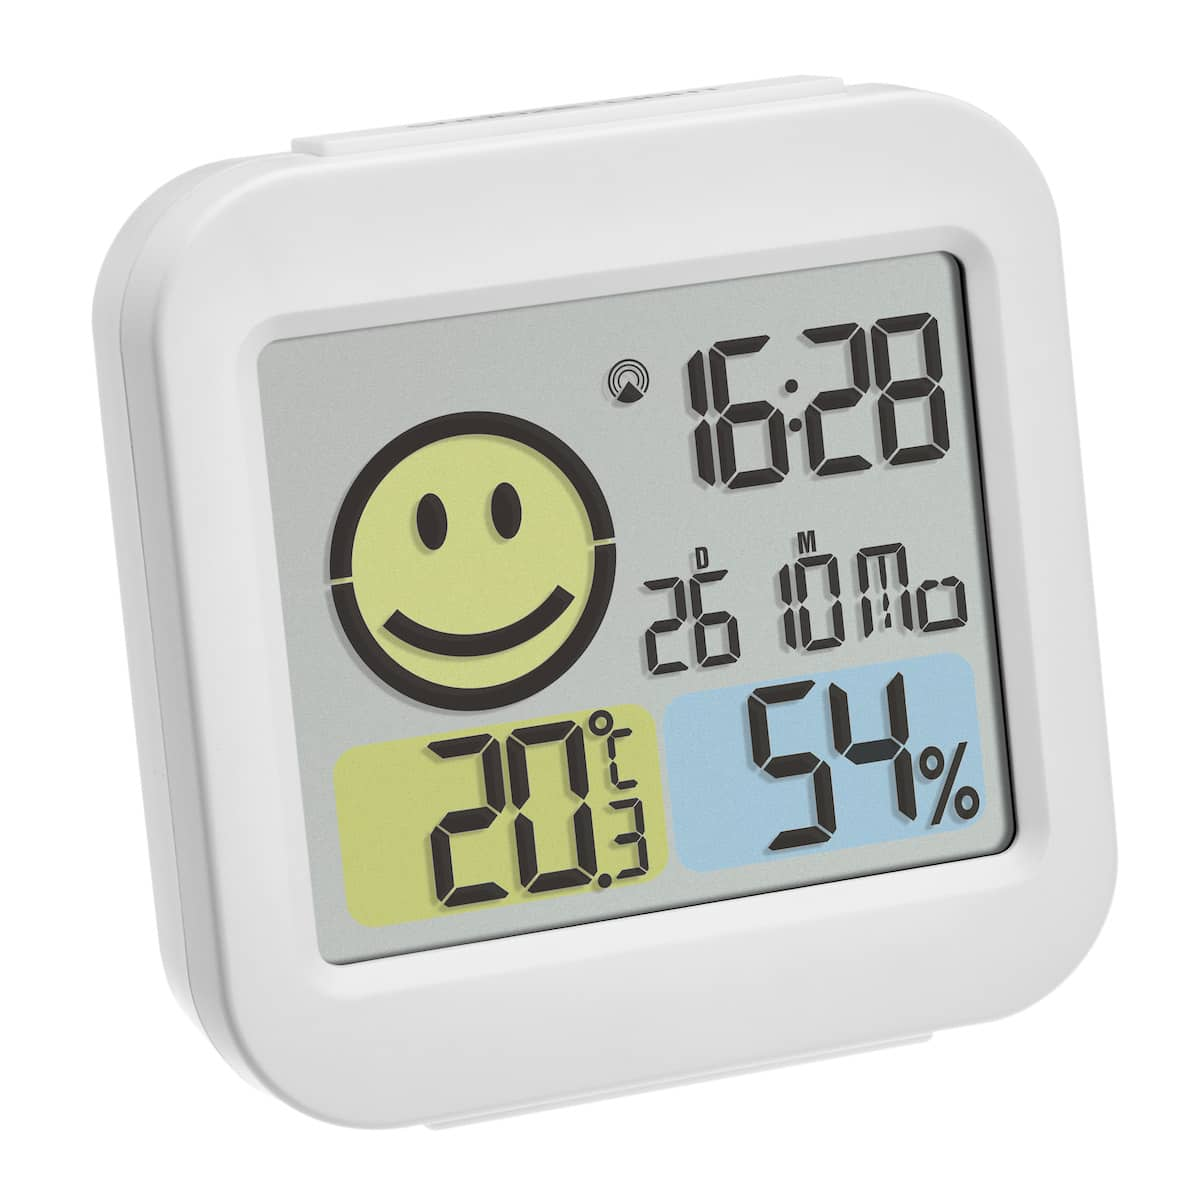 30504902-funk-wecker-thermo-hygrometer-ideal-1200x1200px.jpg